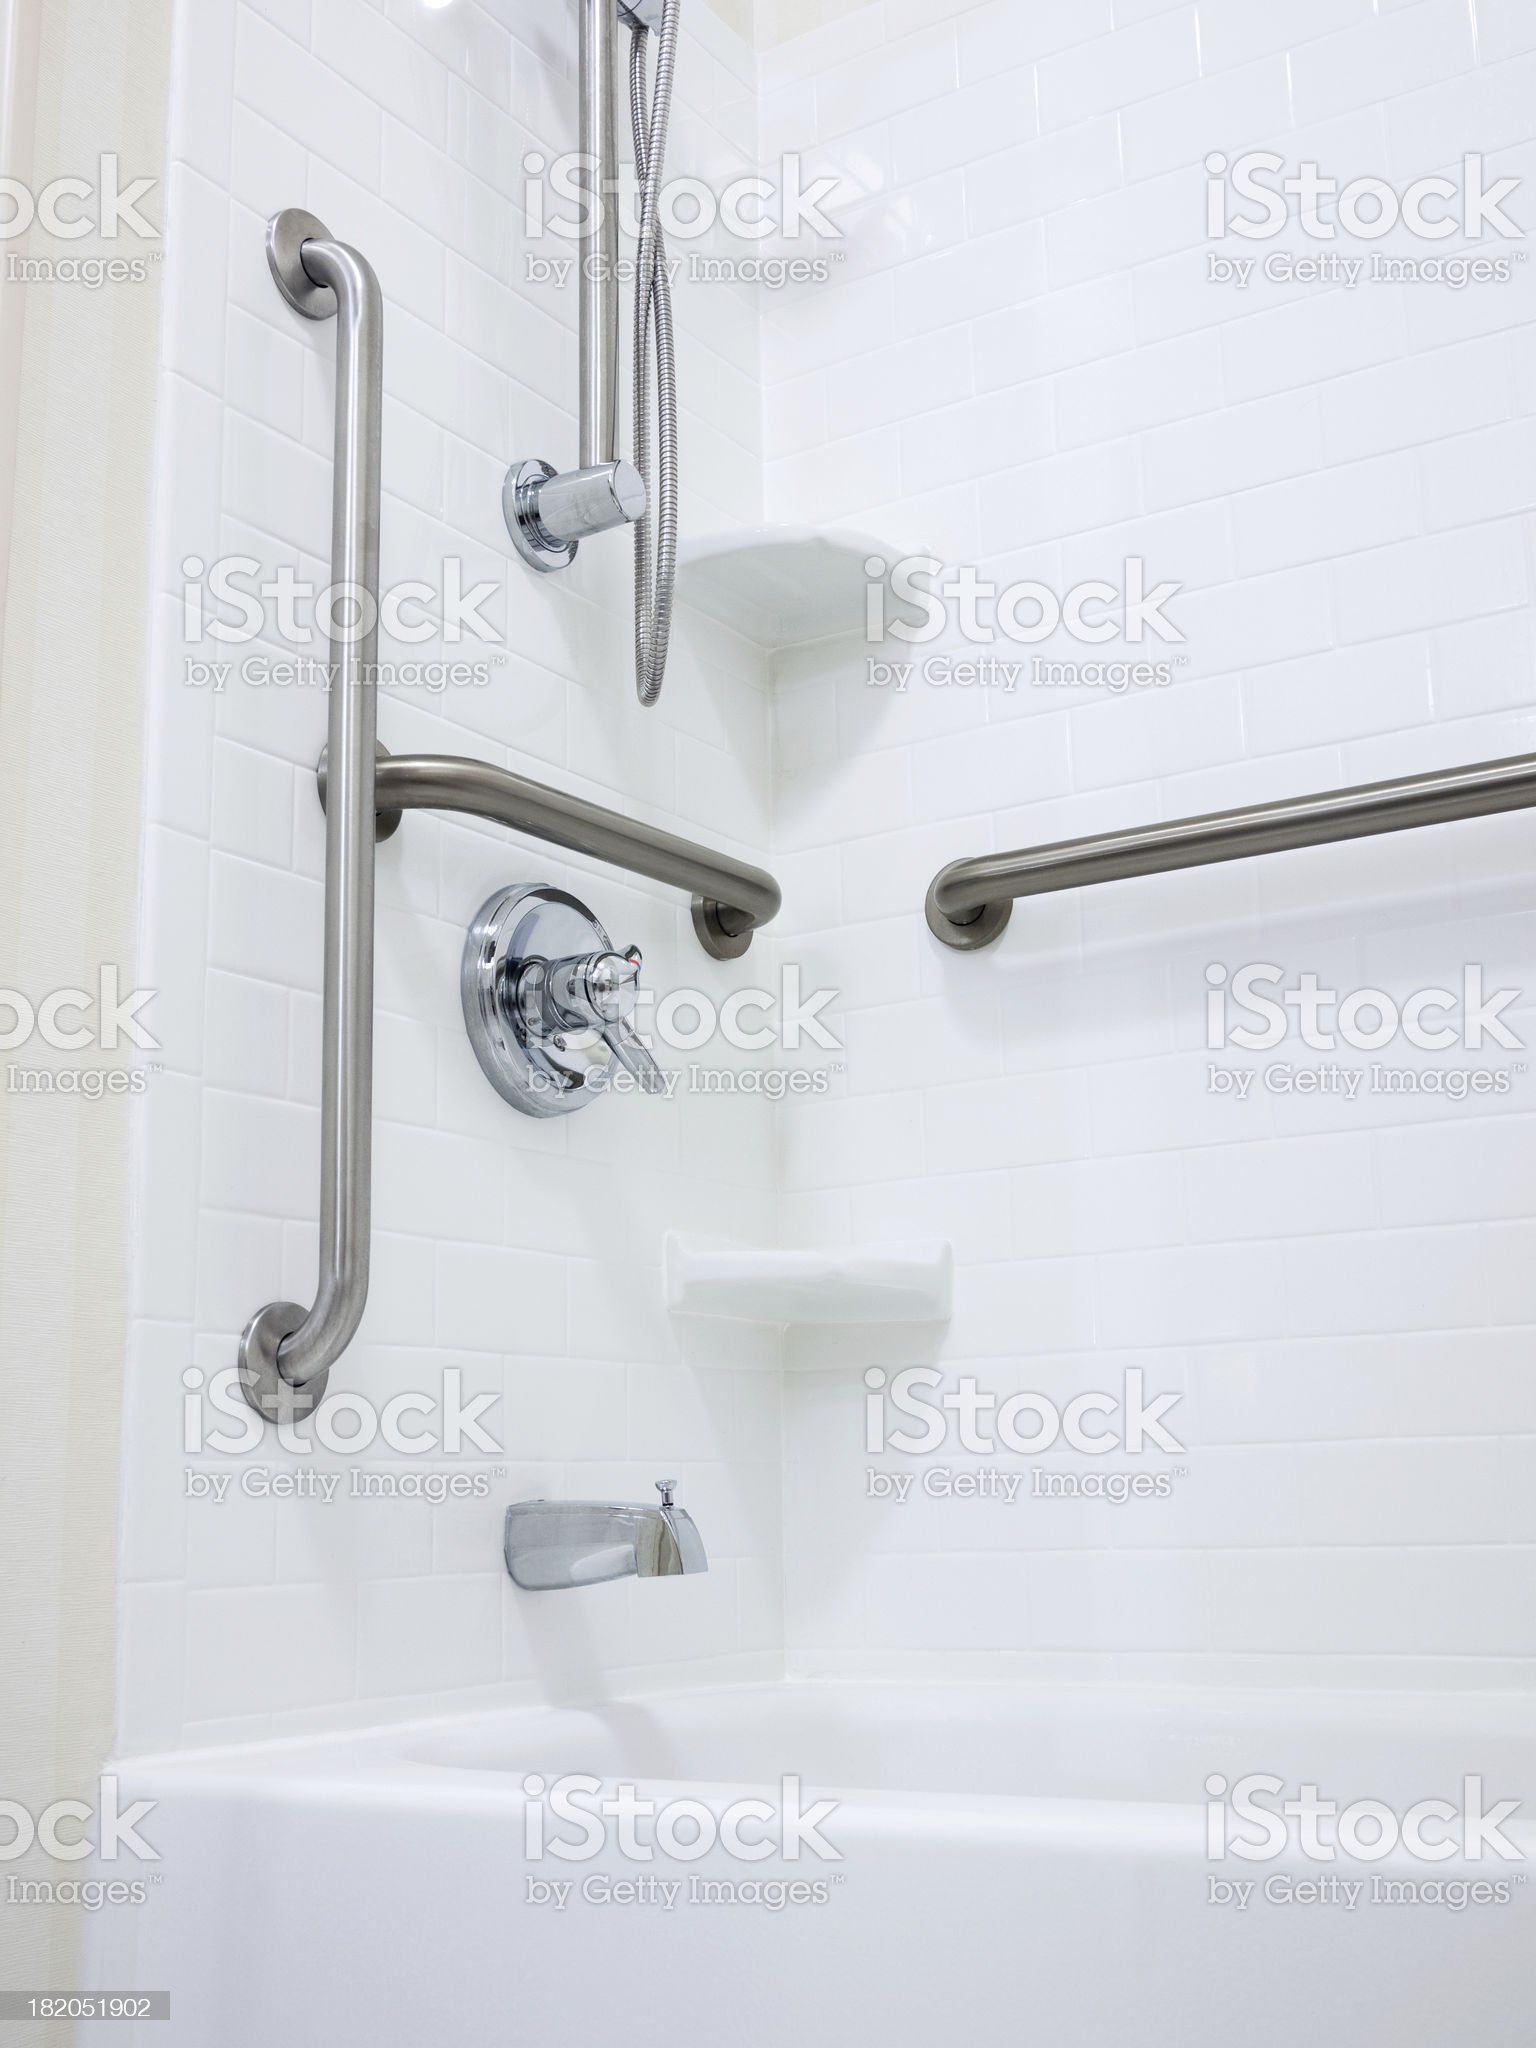 Disabled Handicapped Shower with Grab Bars royalty-free stock photo